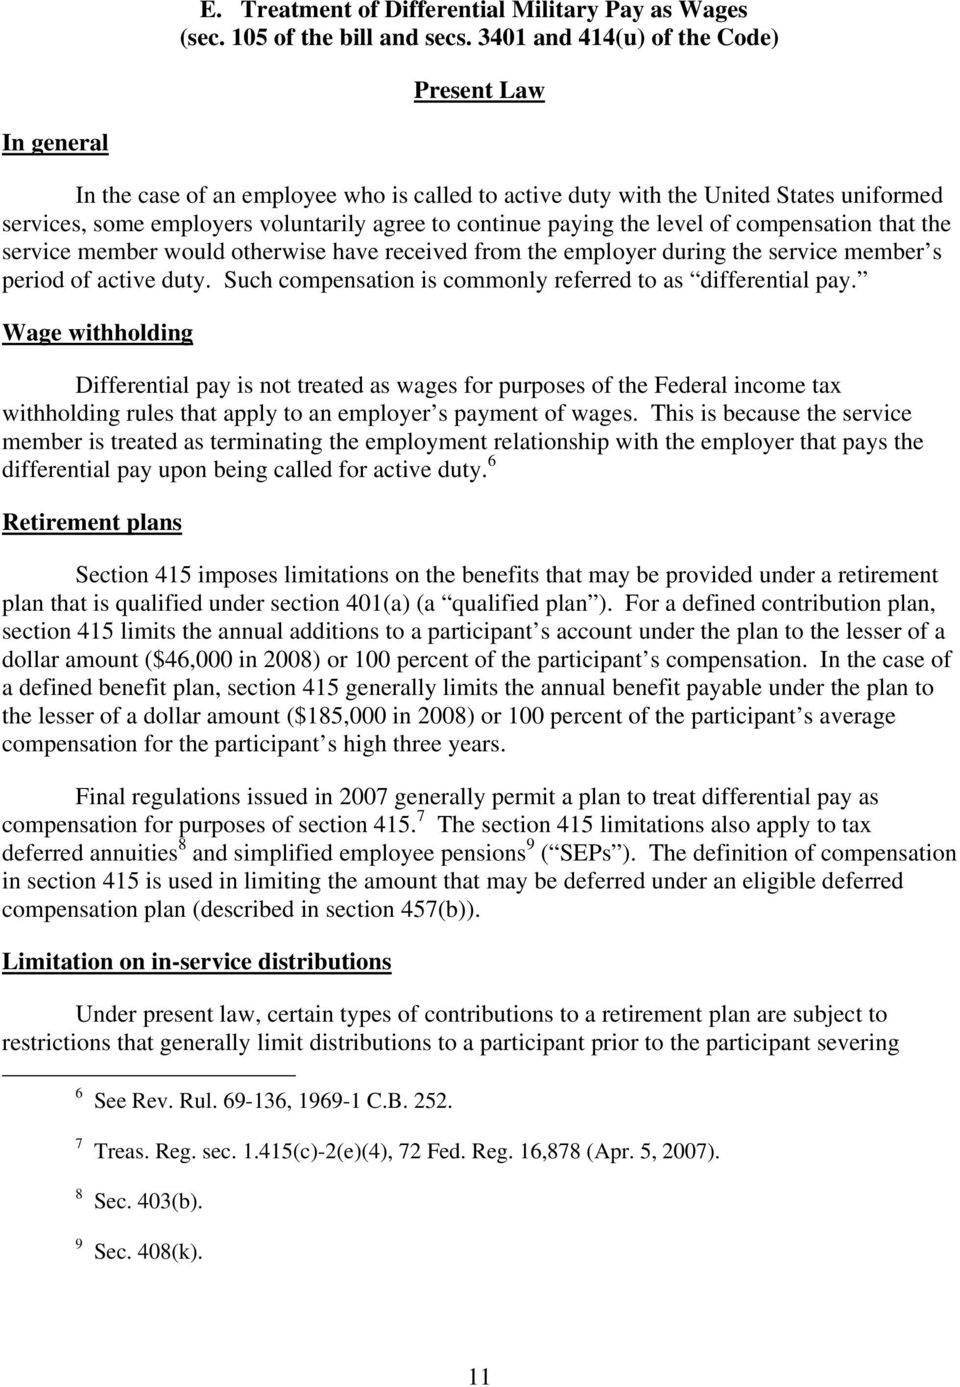 paying the level of compensation that the service member would otherwise have received from the employer during the service member s period of active duty.